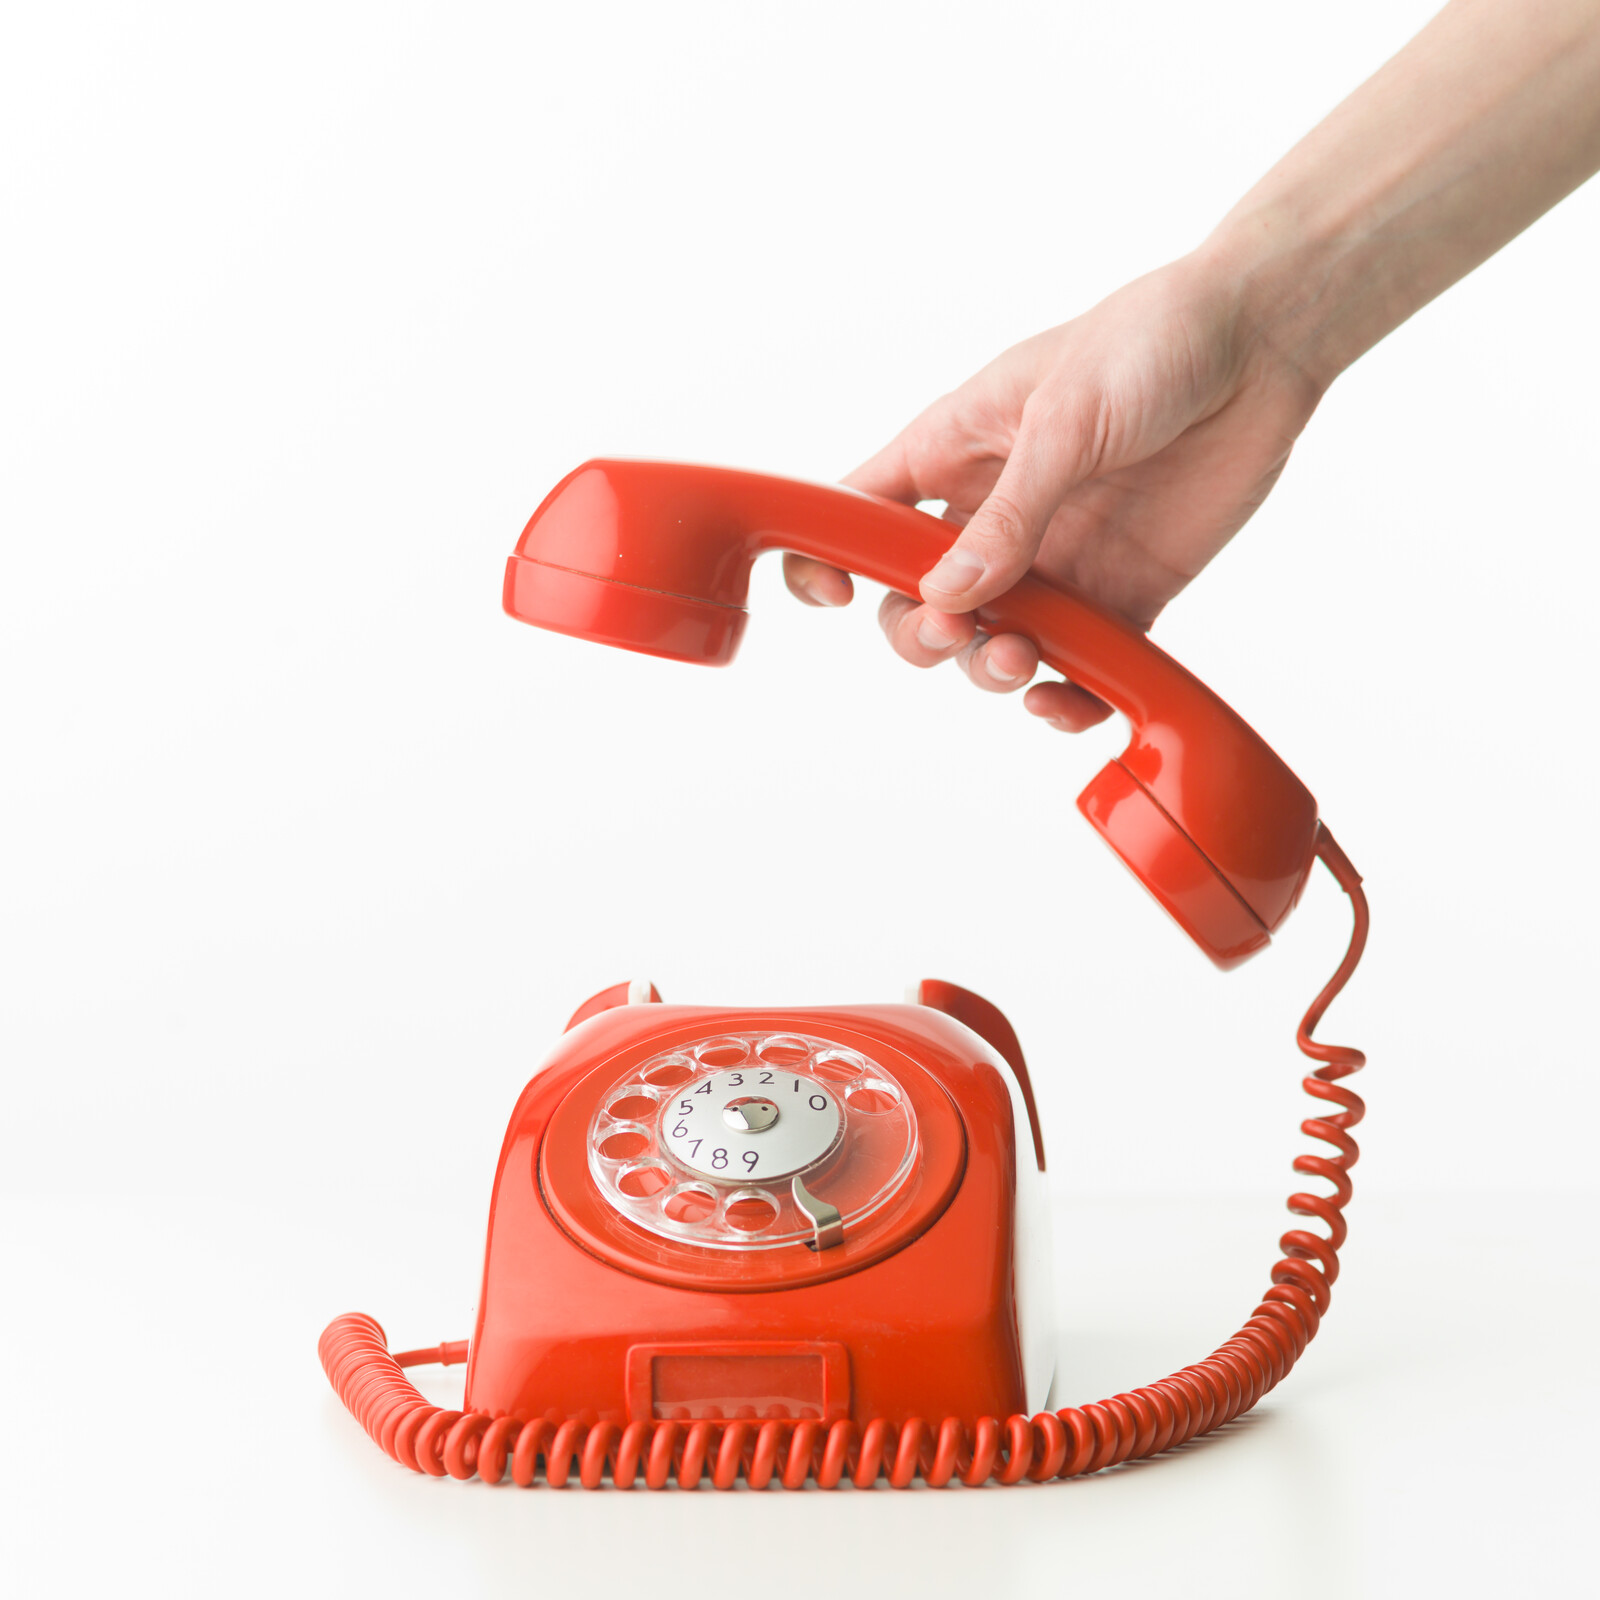 Orange rotary phone with someone's hand hanging up the receiver